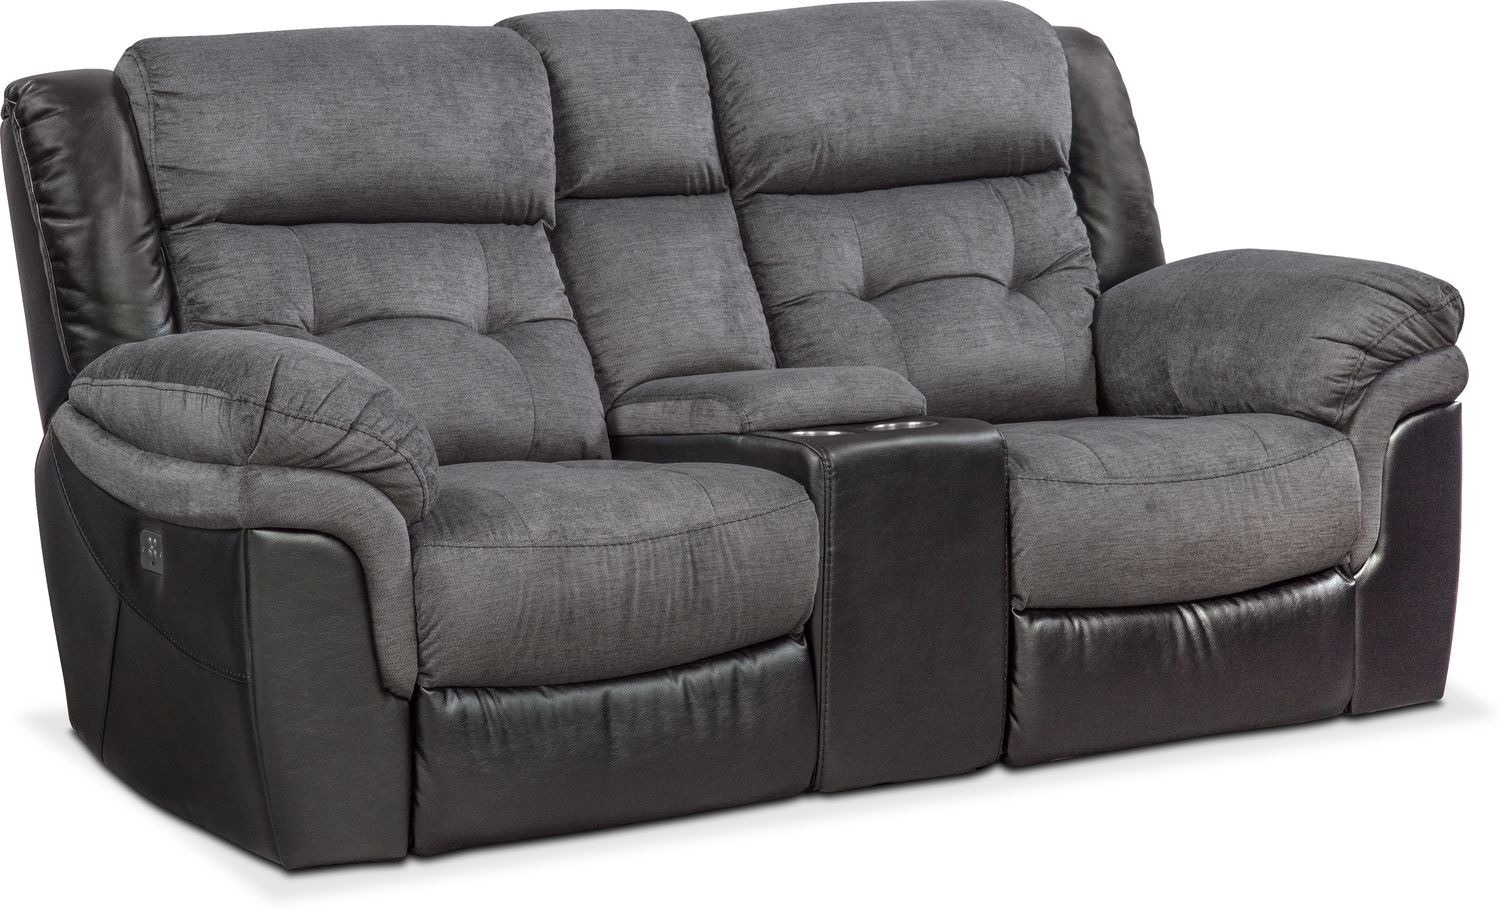 Tacoma Dual Power Reclining Loveseat With Console American